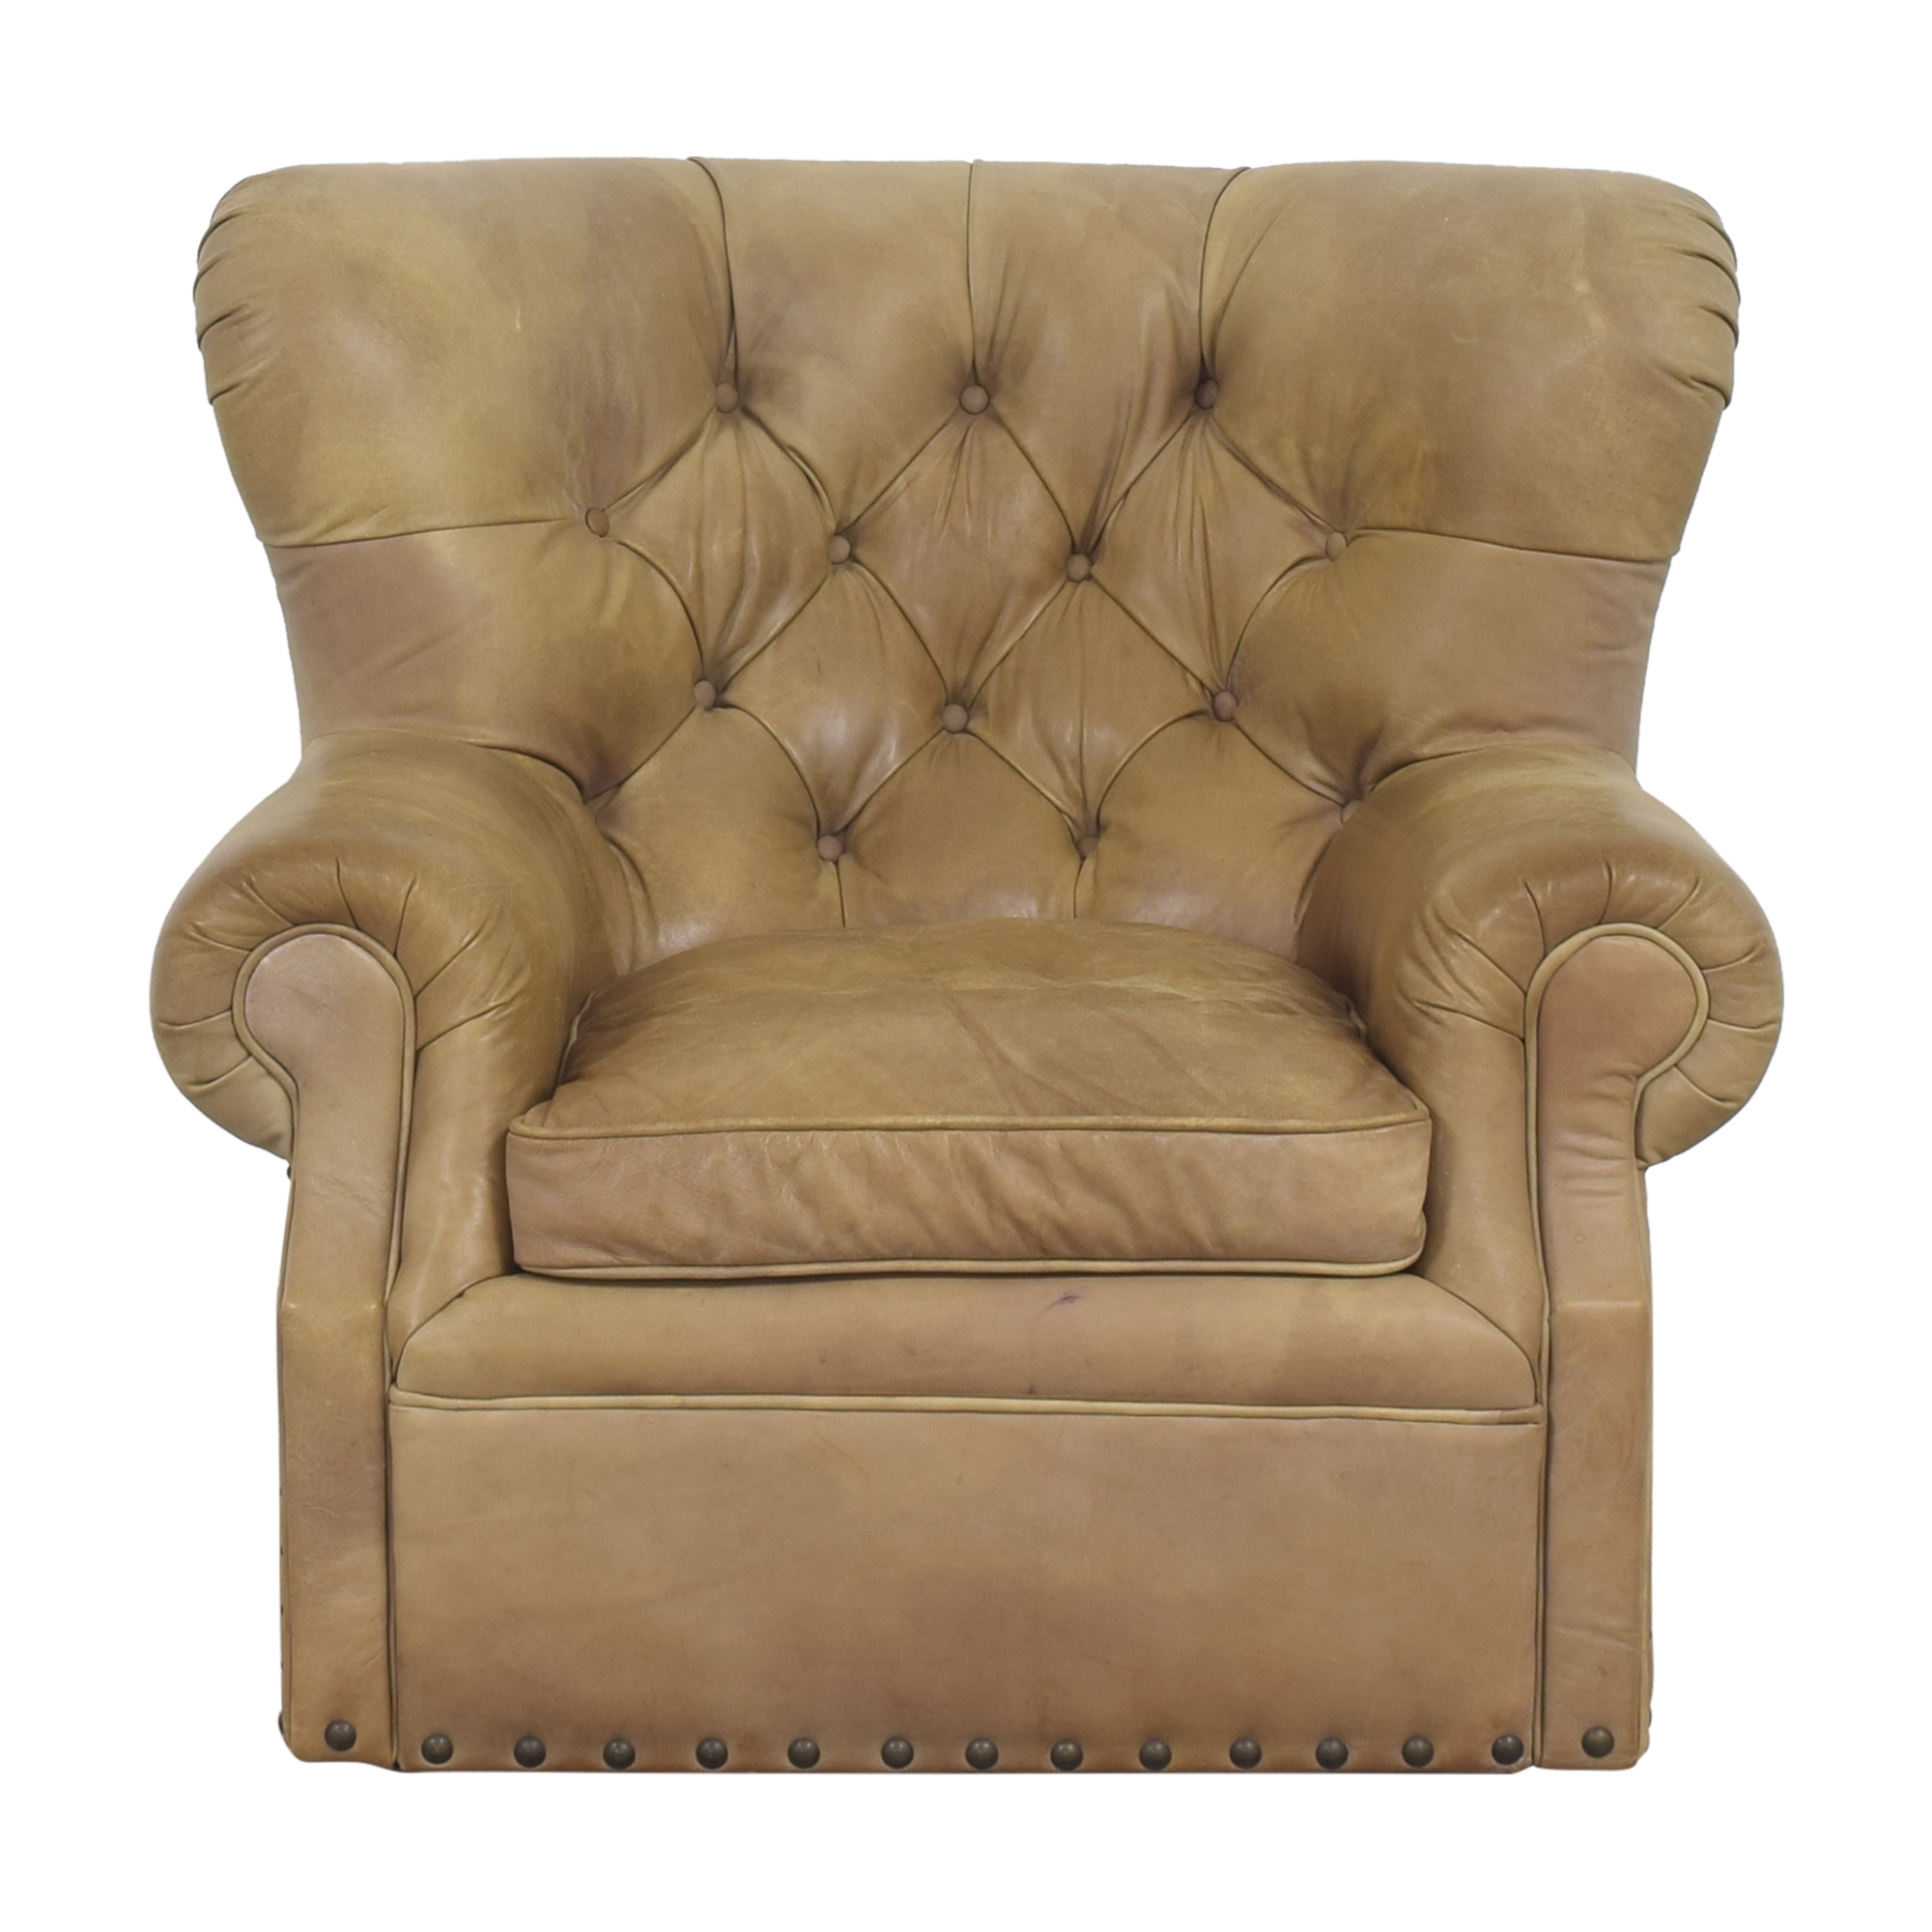 Restoration Hardware Churchill Swivel Chair with Nailheads / Accent Chairs